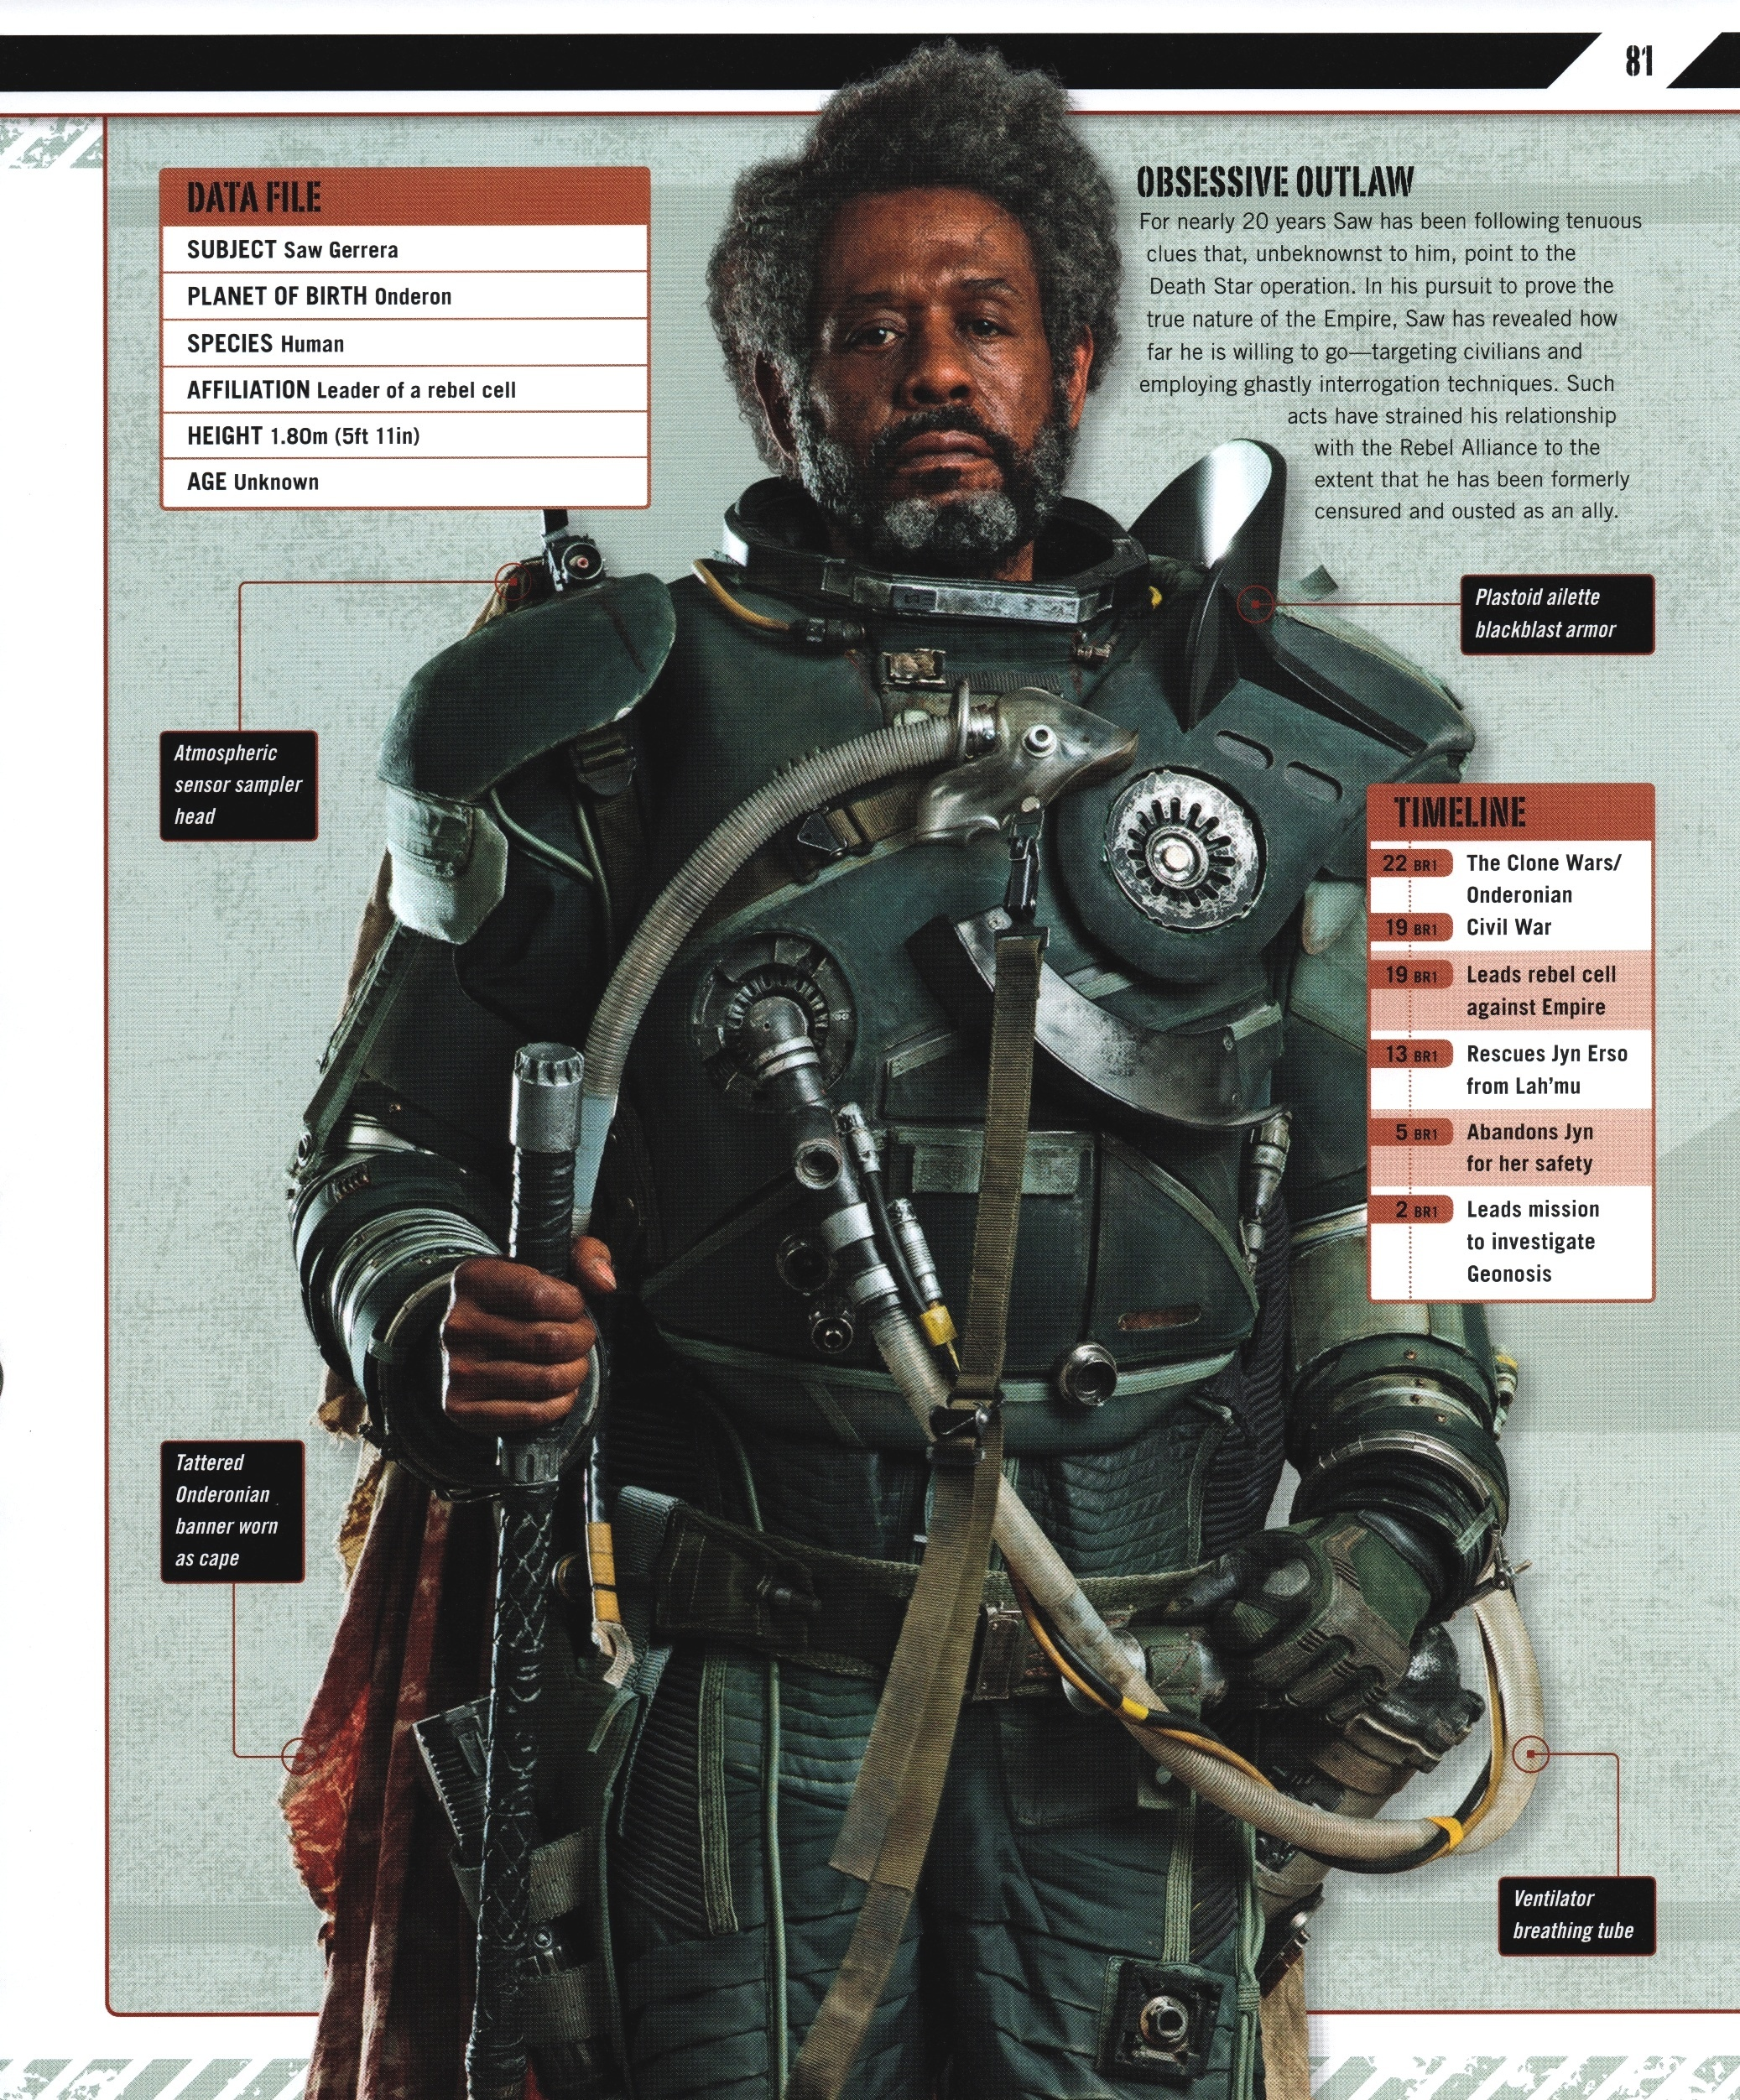 Rogue One Ultimate Visual Guide (b0bafett_Empire) p081